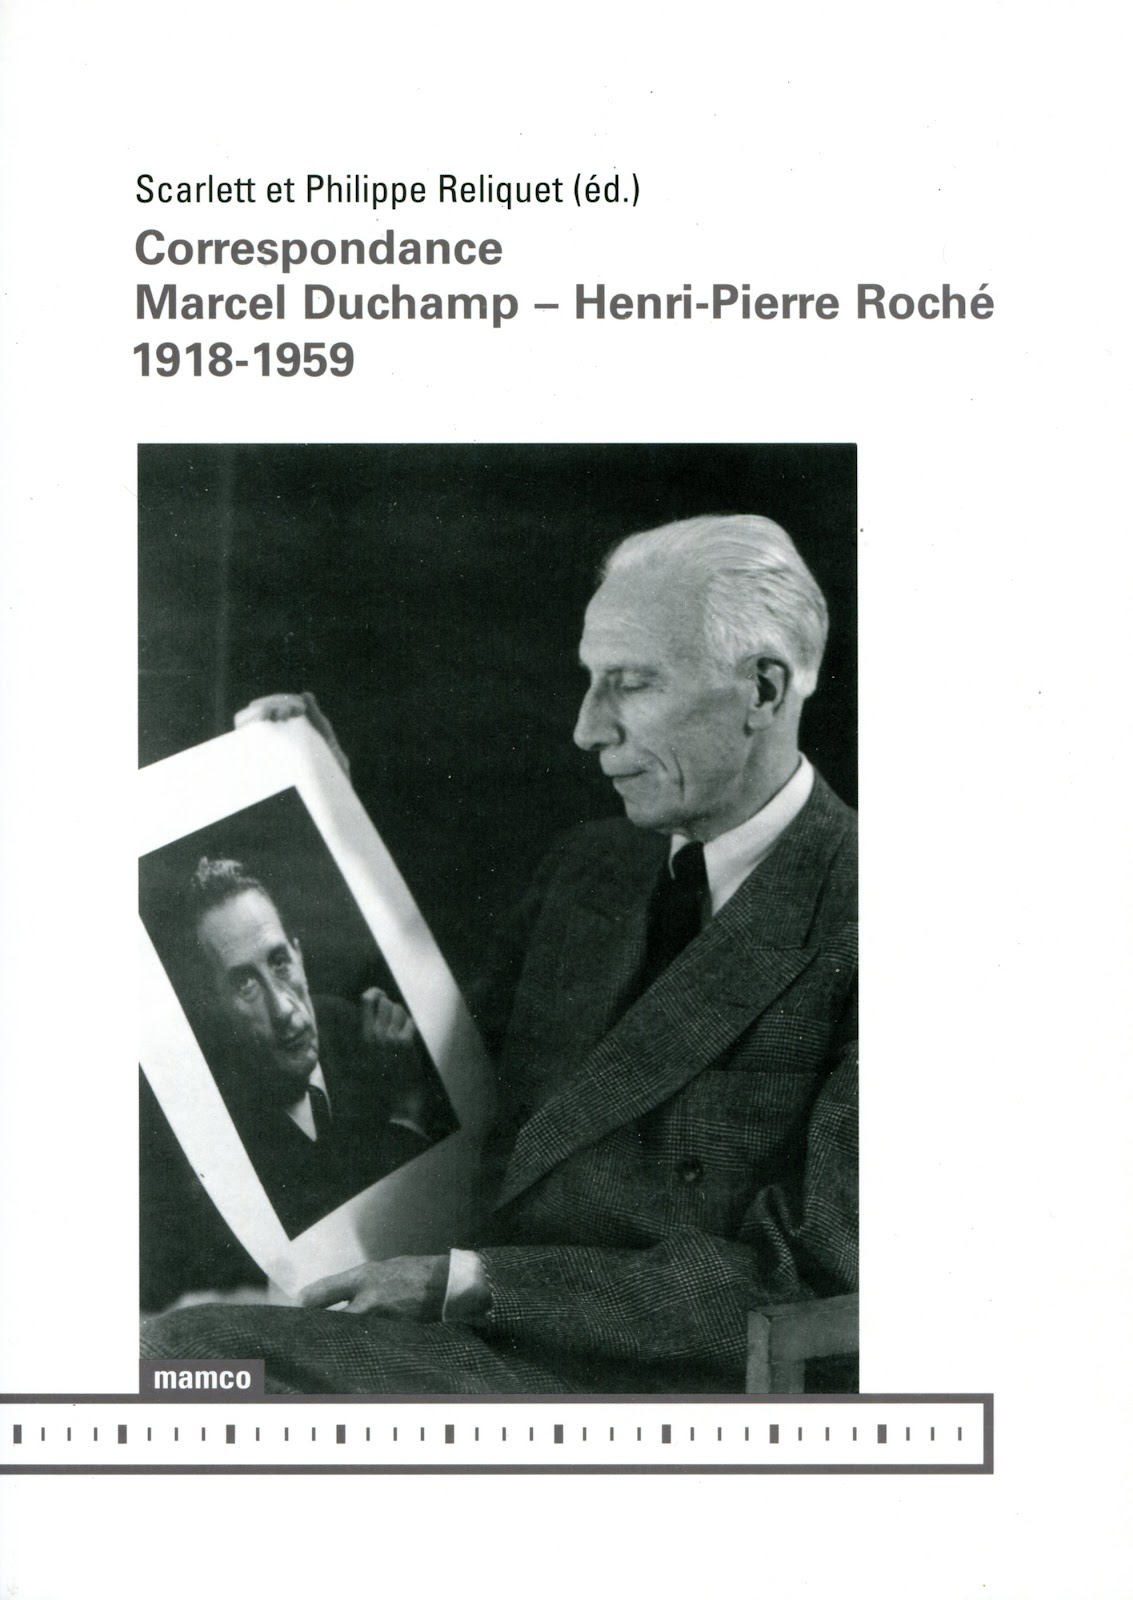 readymade duchamp essay Thus rudolf e kuenzli and francis naumann subtitle their recent collection of essays on duchamp artist of the century  duchamp's readymades (as in readymade.